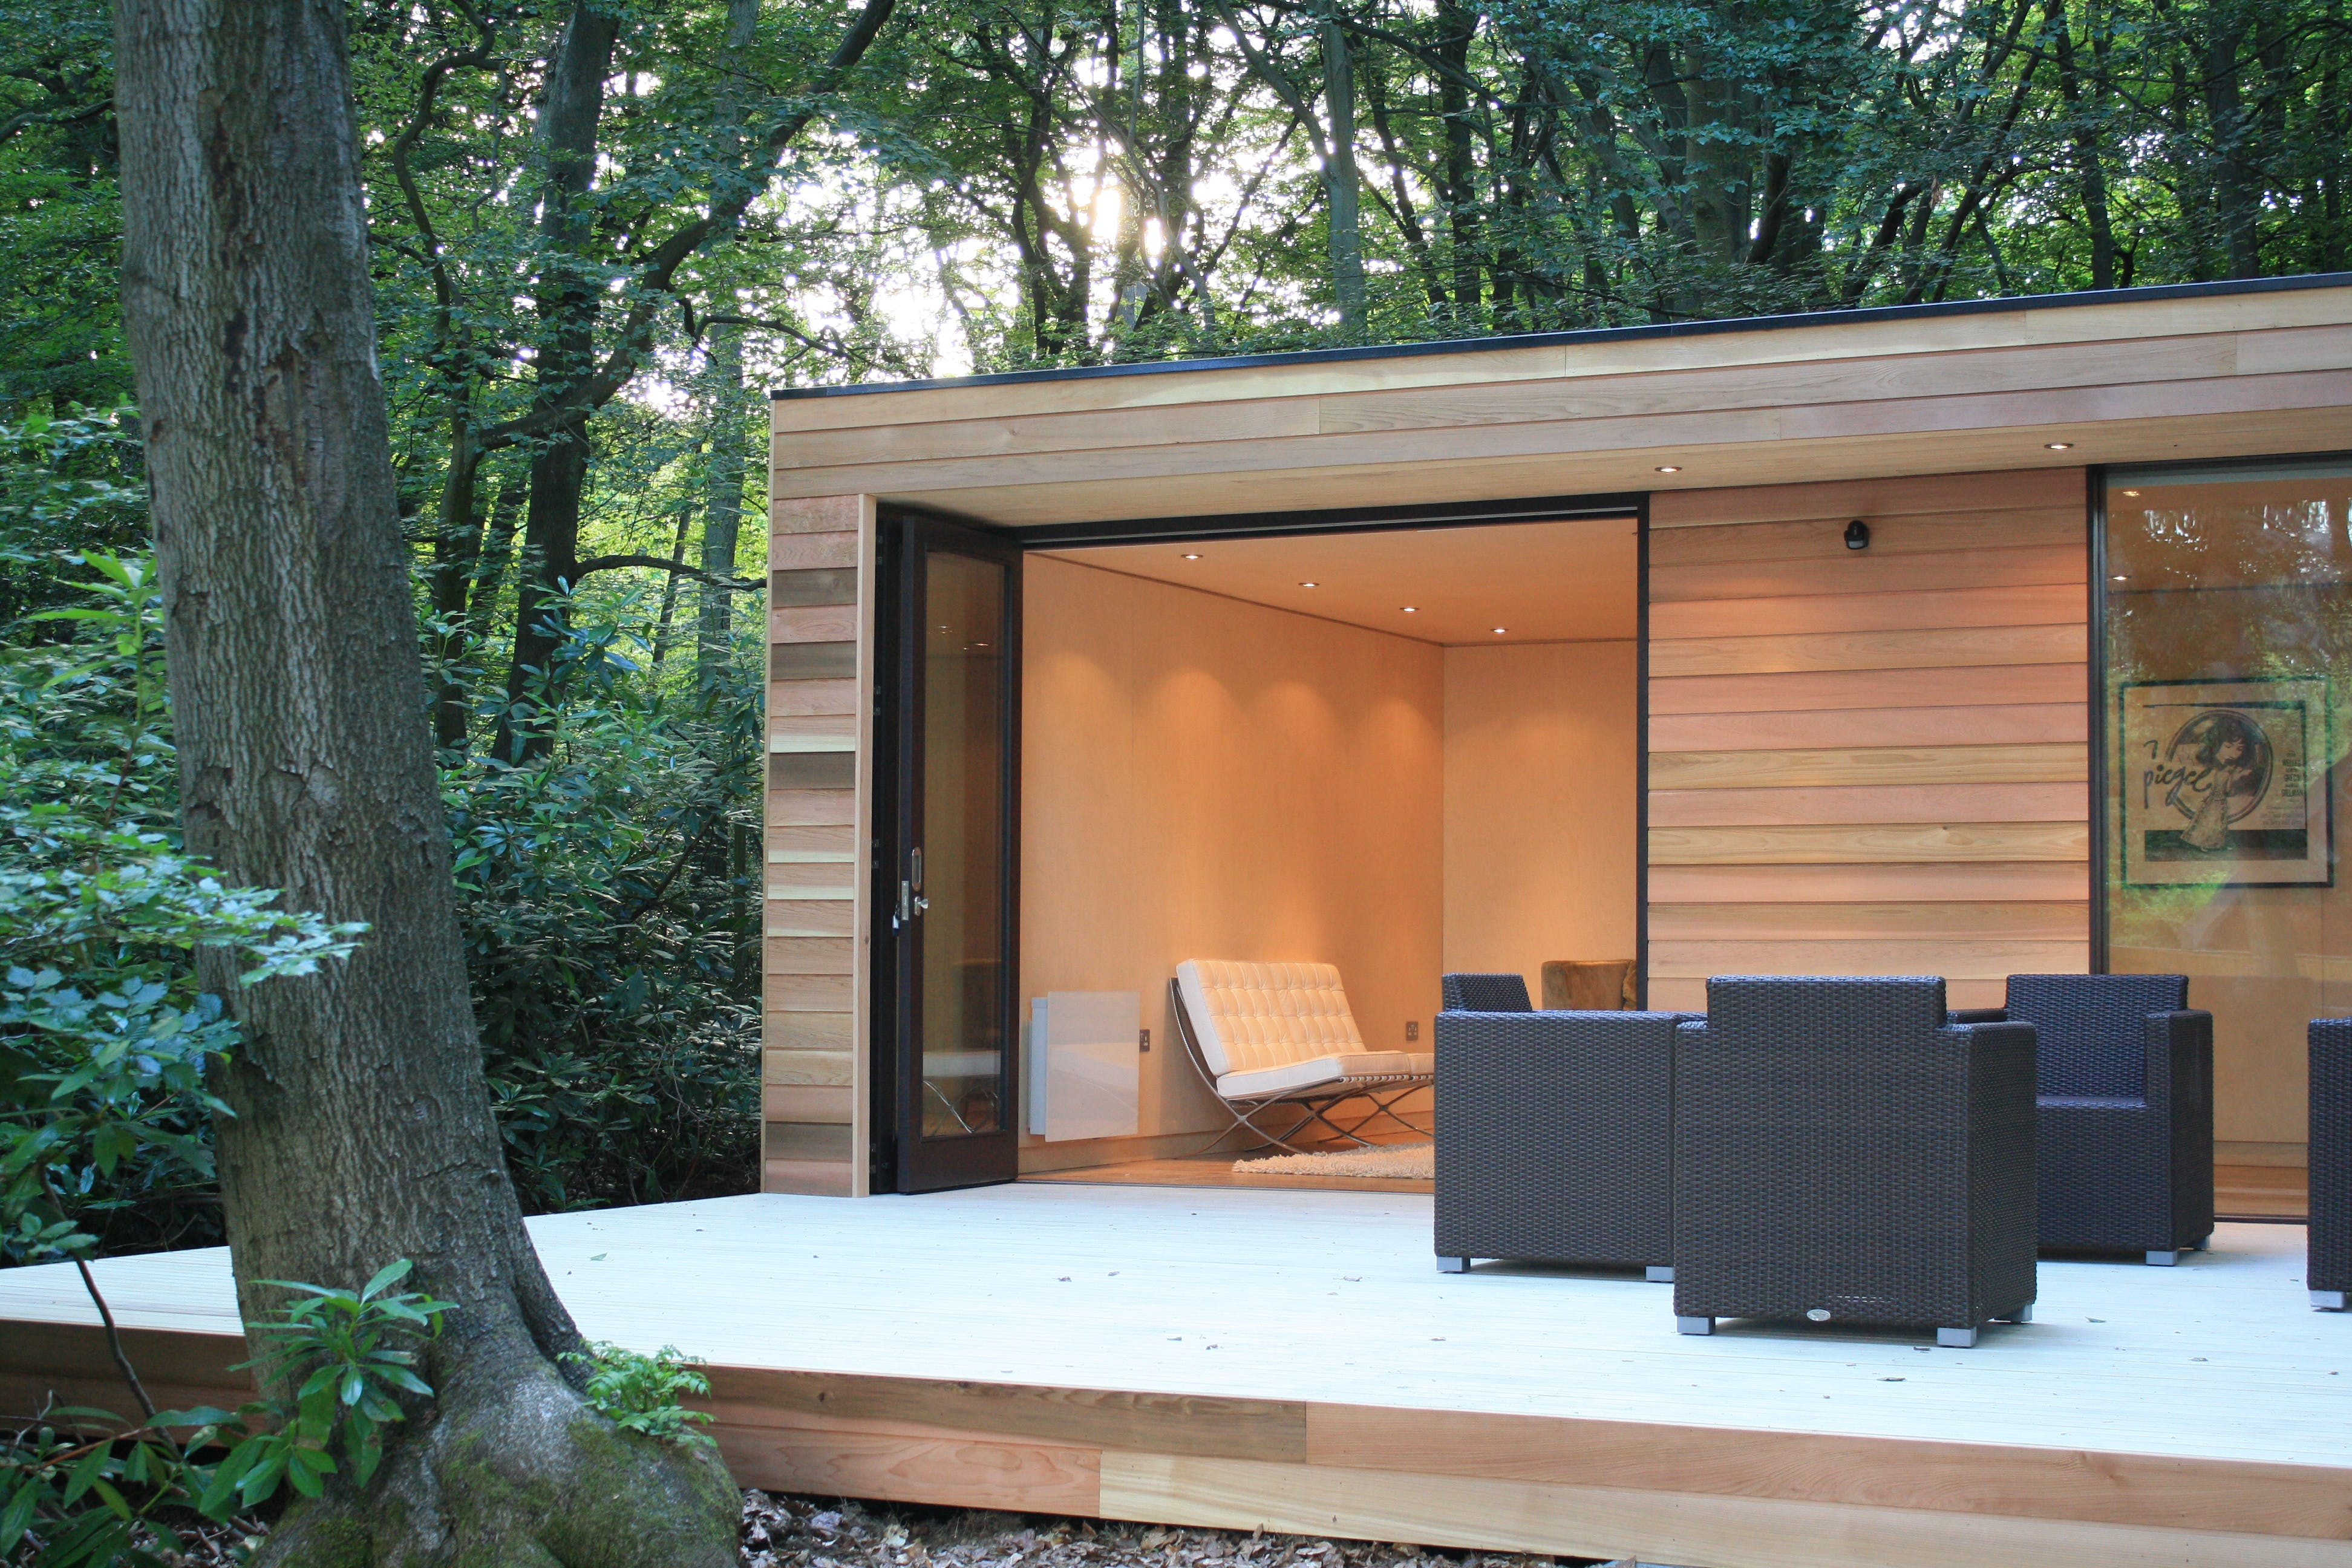 init studios garden office. 8 more images init studios garden office